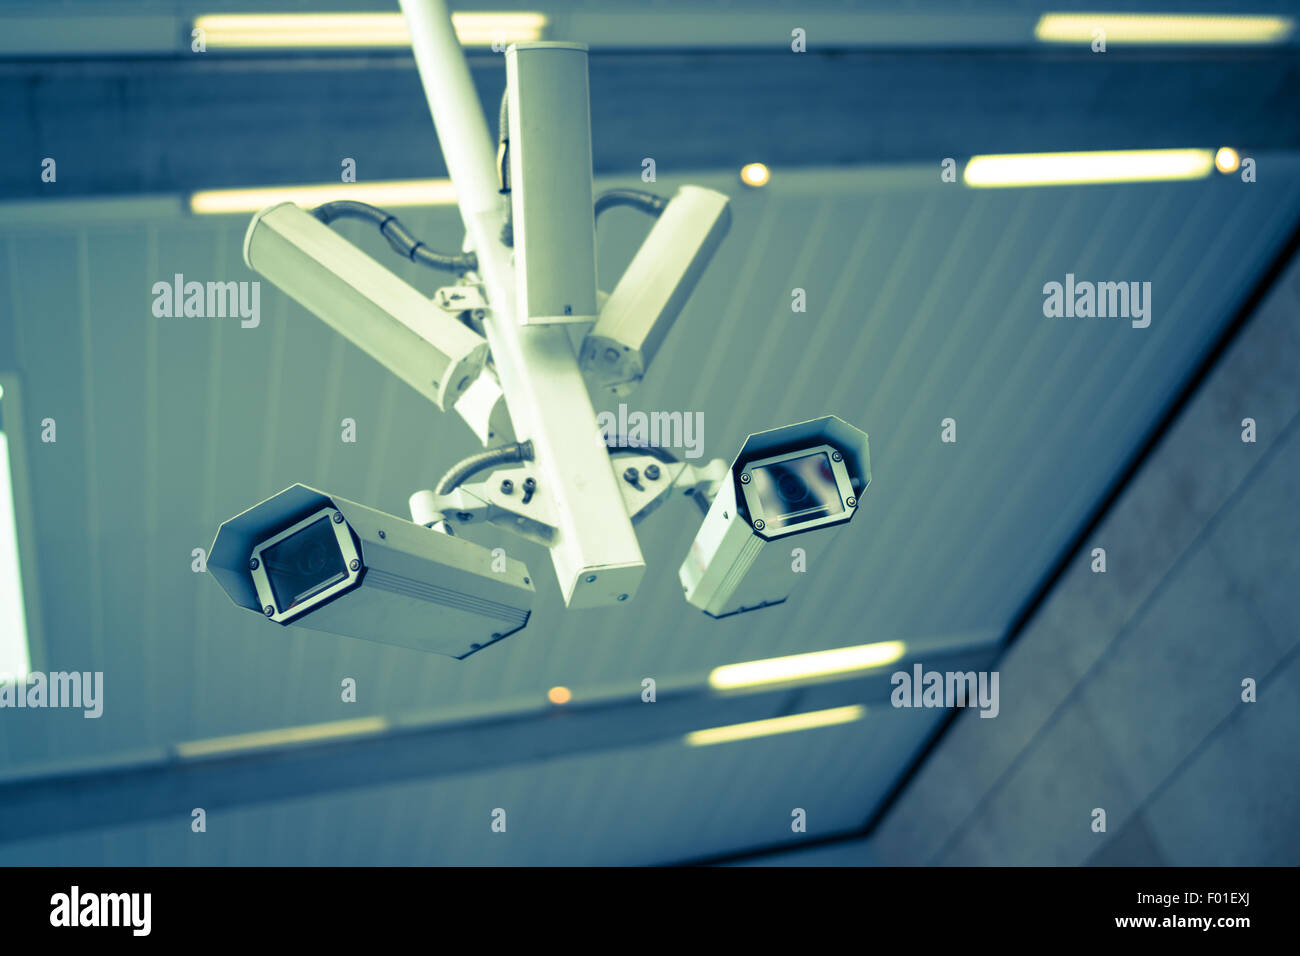 A CCTV camera in a north London station. - Stock Image